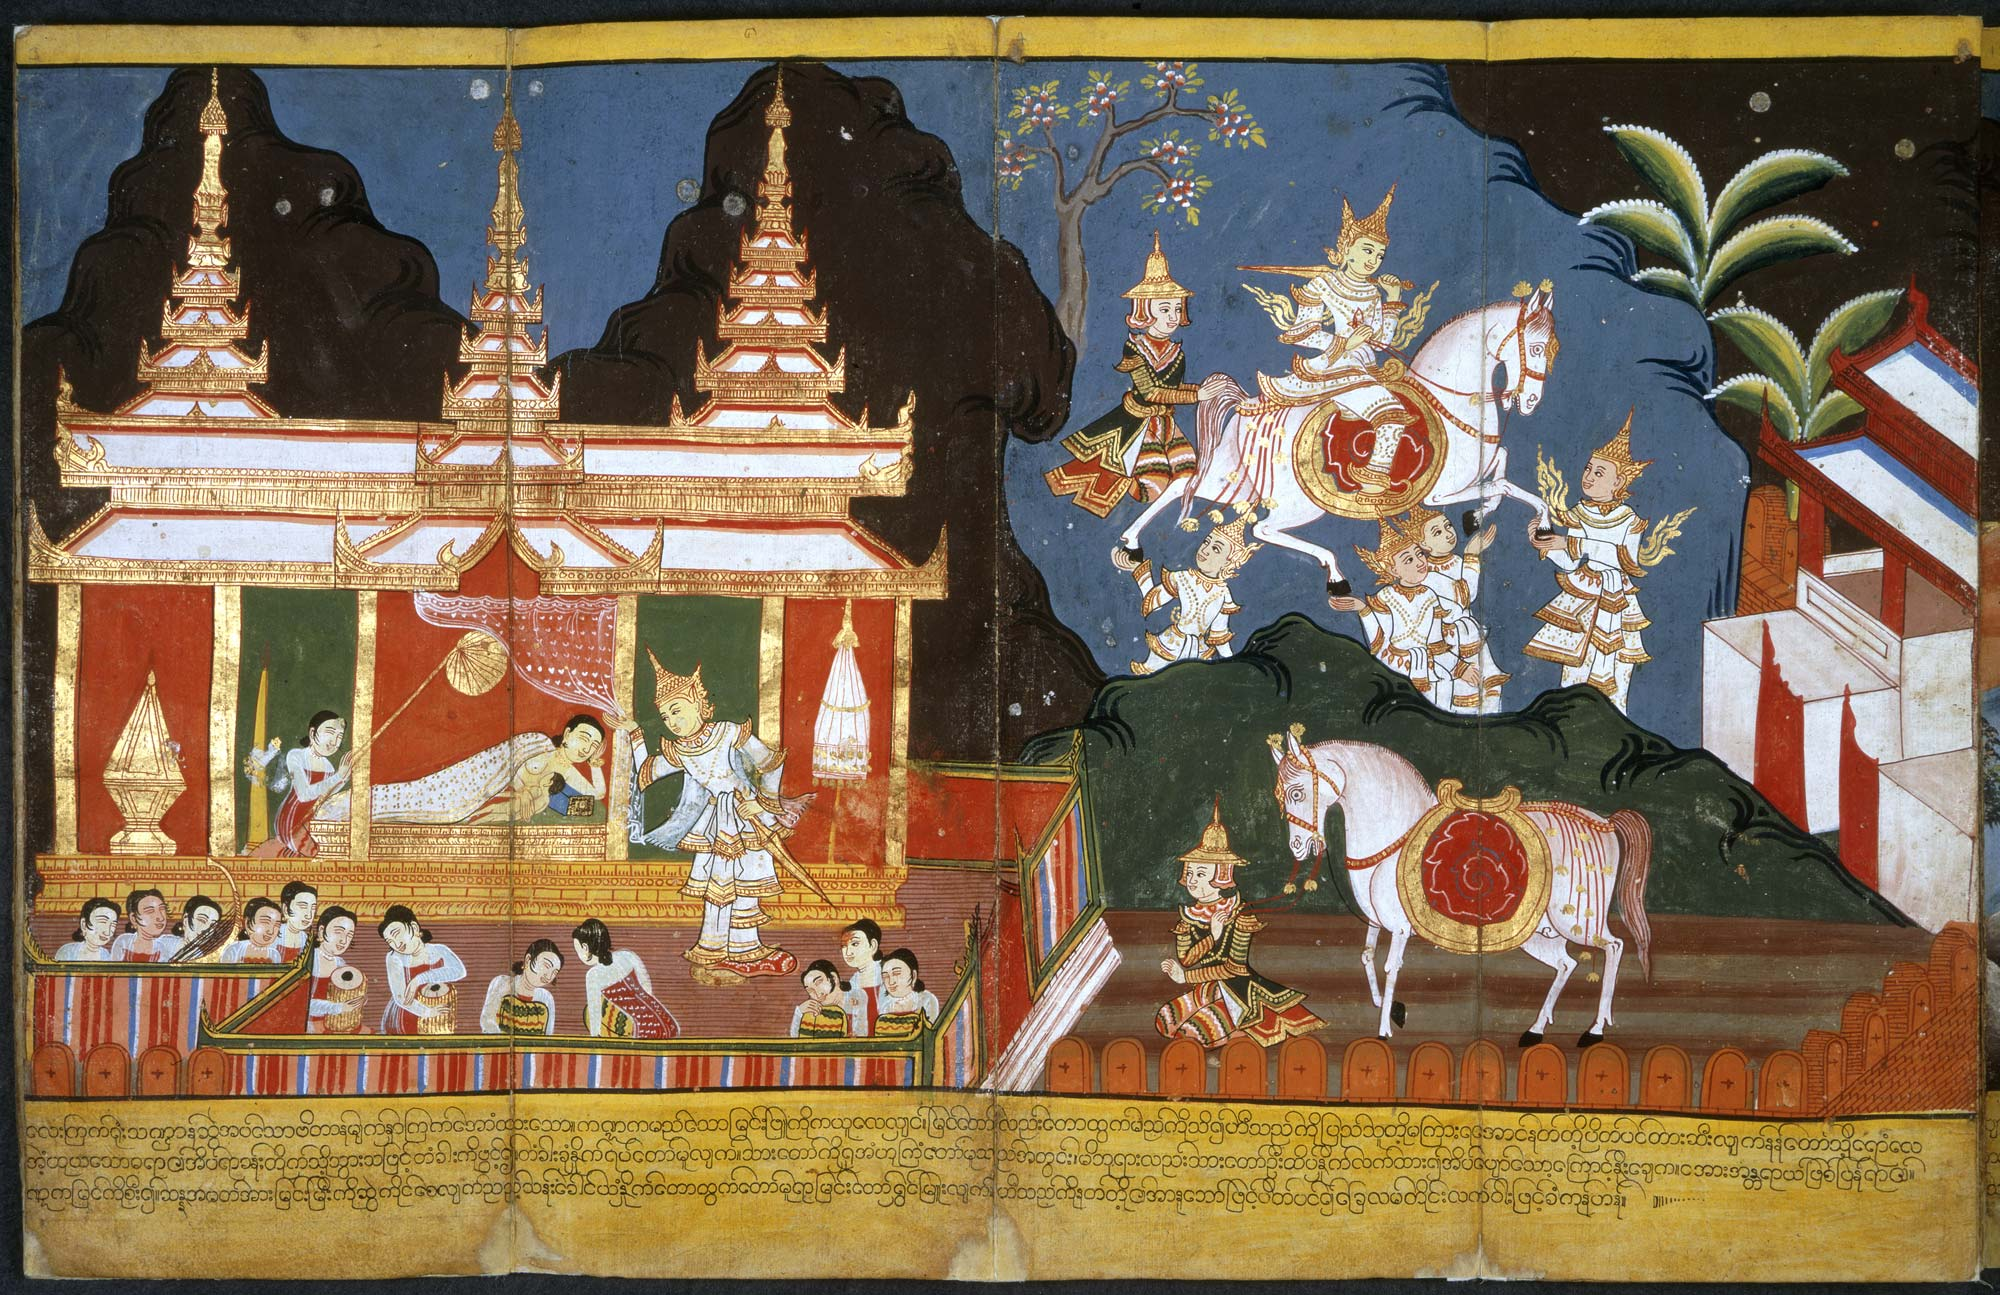 The Life of Buddha f.3-4. The Shakya Prince leaving his wife and child to find enlightenment